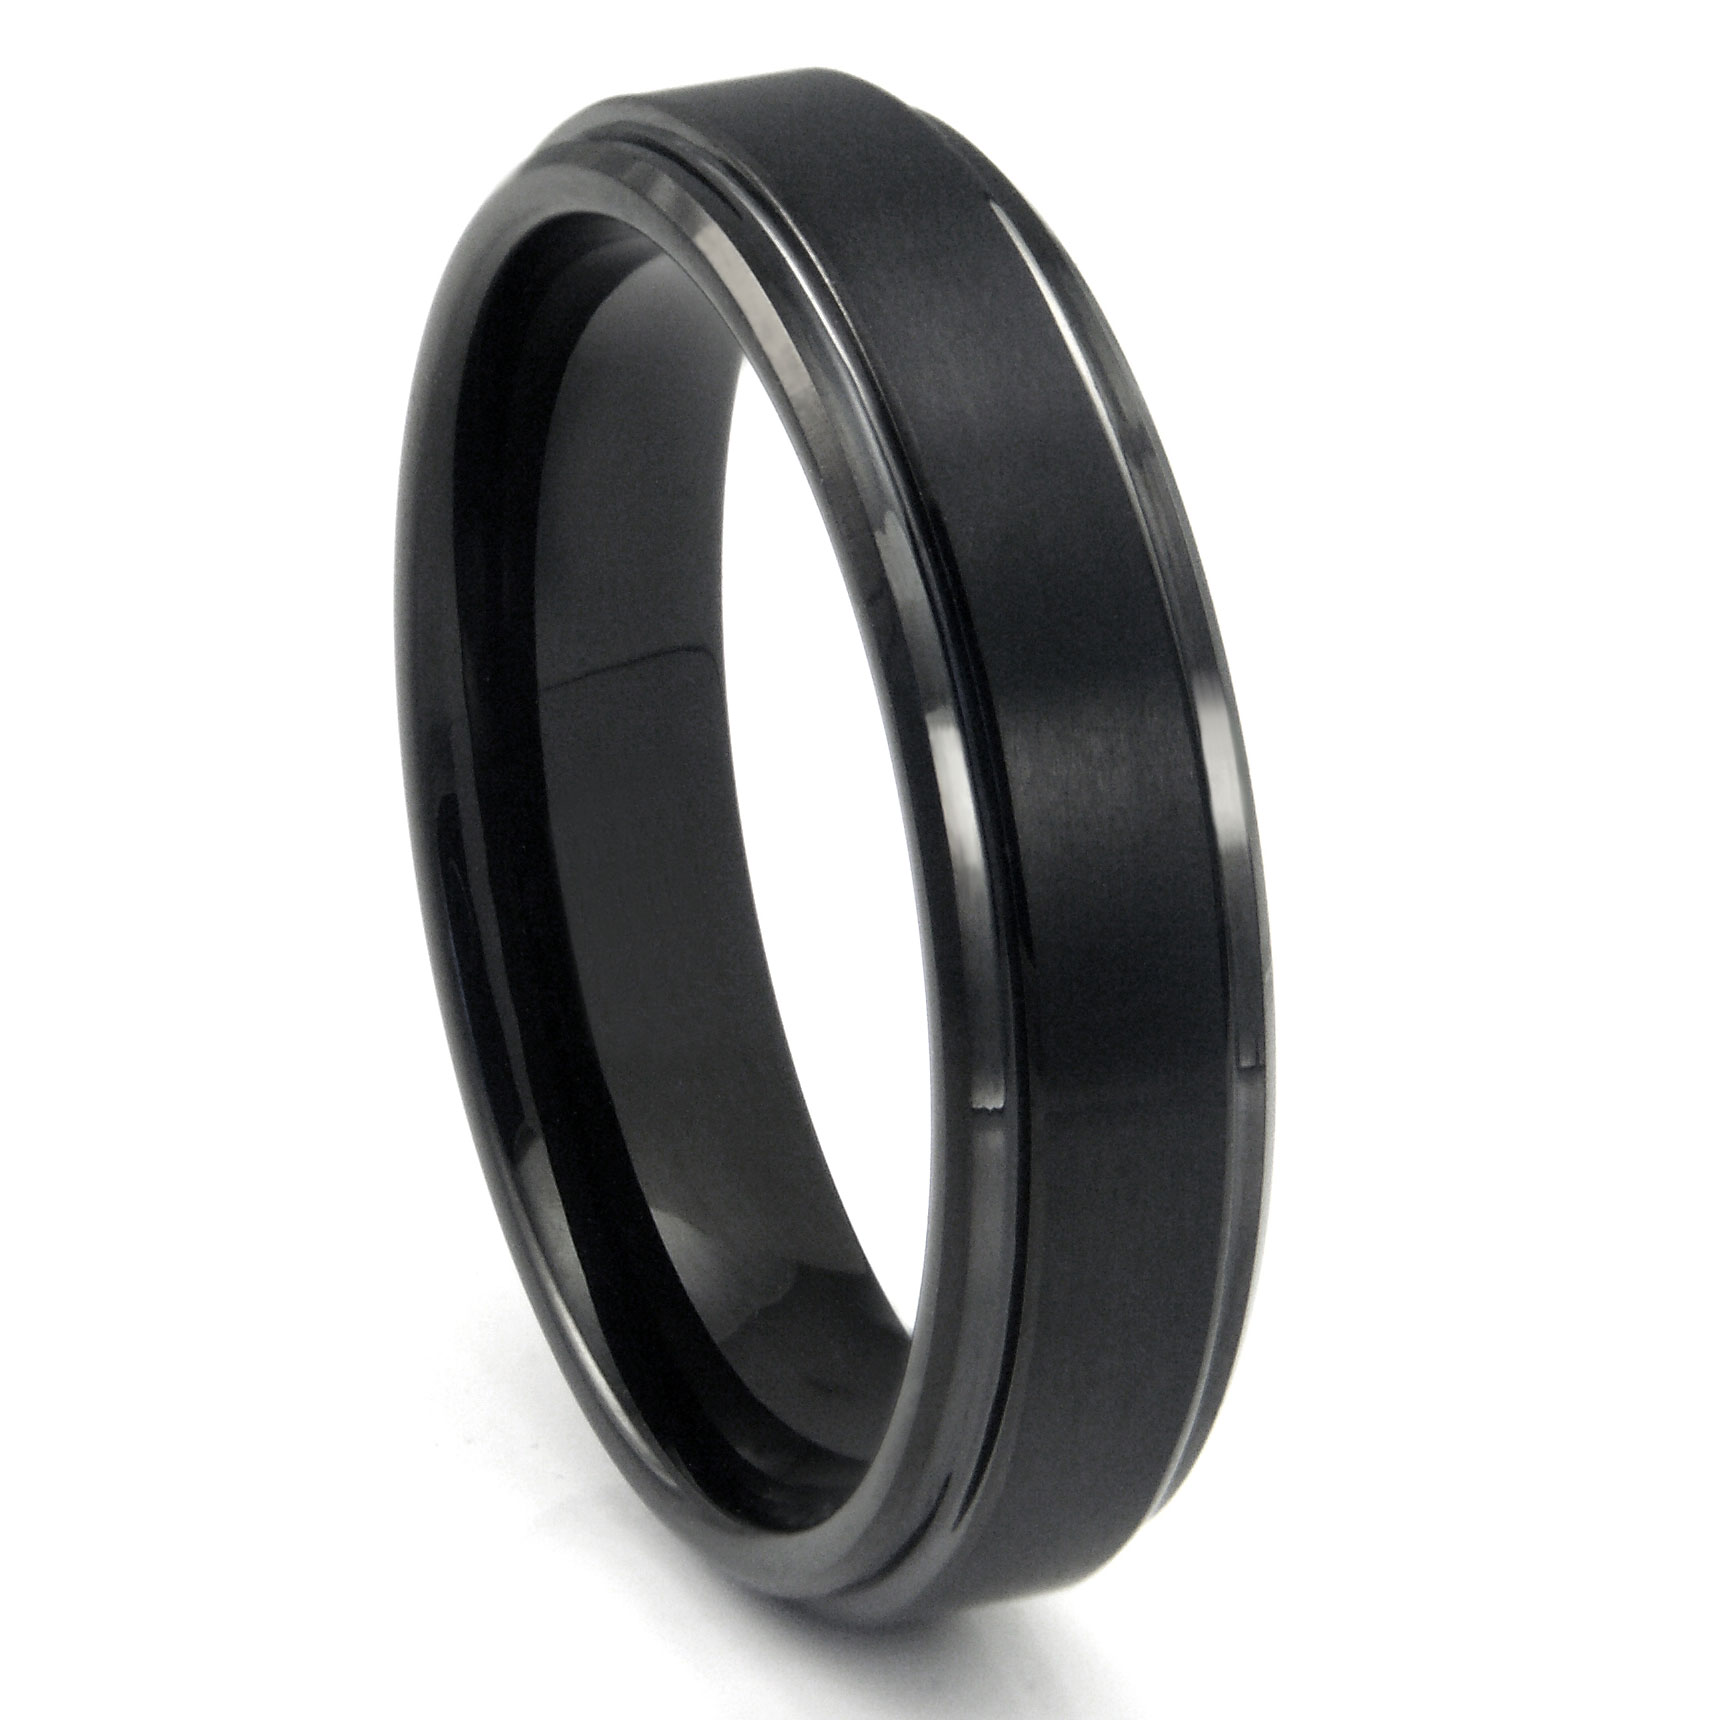 collections fixate dark vent designs black s vented slate rings men silicone mens x ring